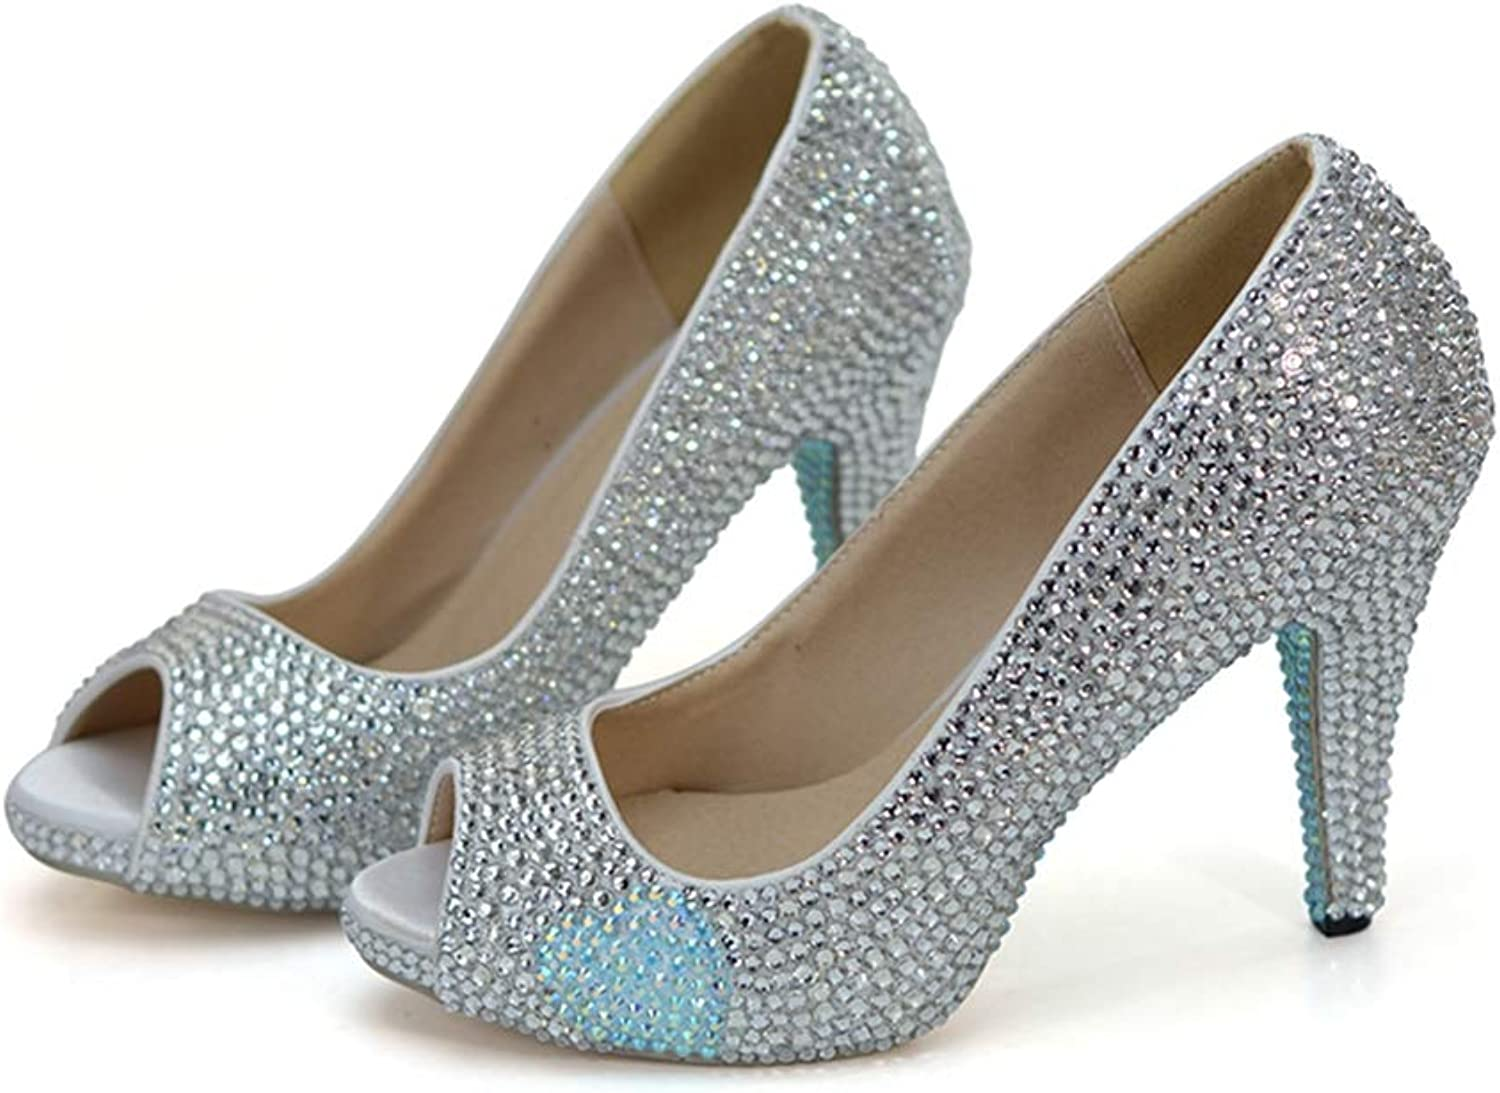 Sparrow Fairy Tale Evening Dress Heels Pumps Silver Rhienstone with Baby bluee Wedding shoes Peep Toe Bride shoes